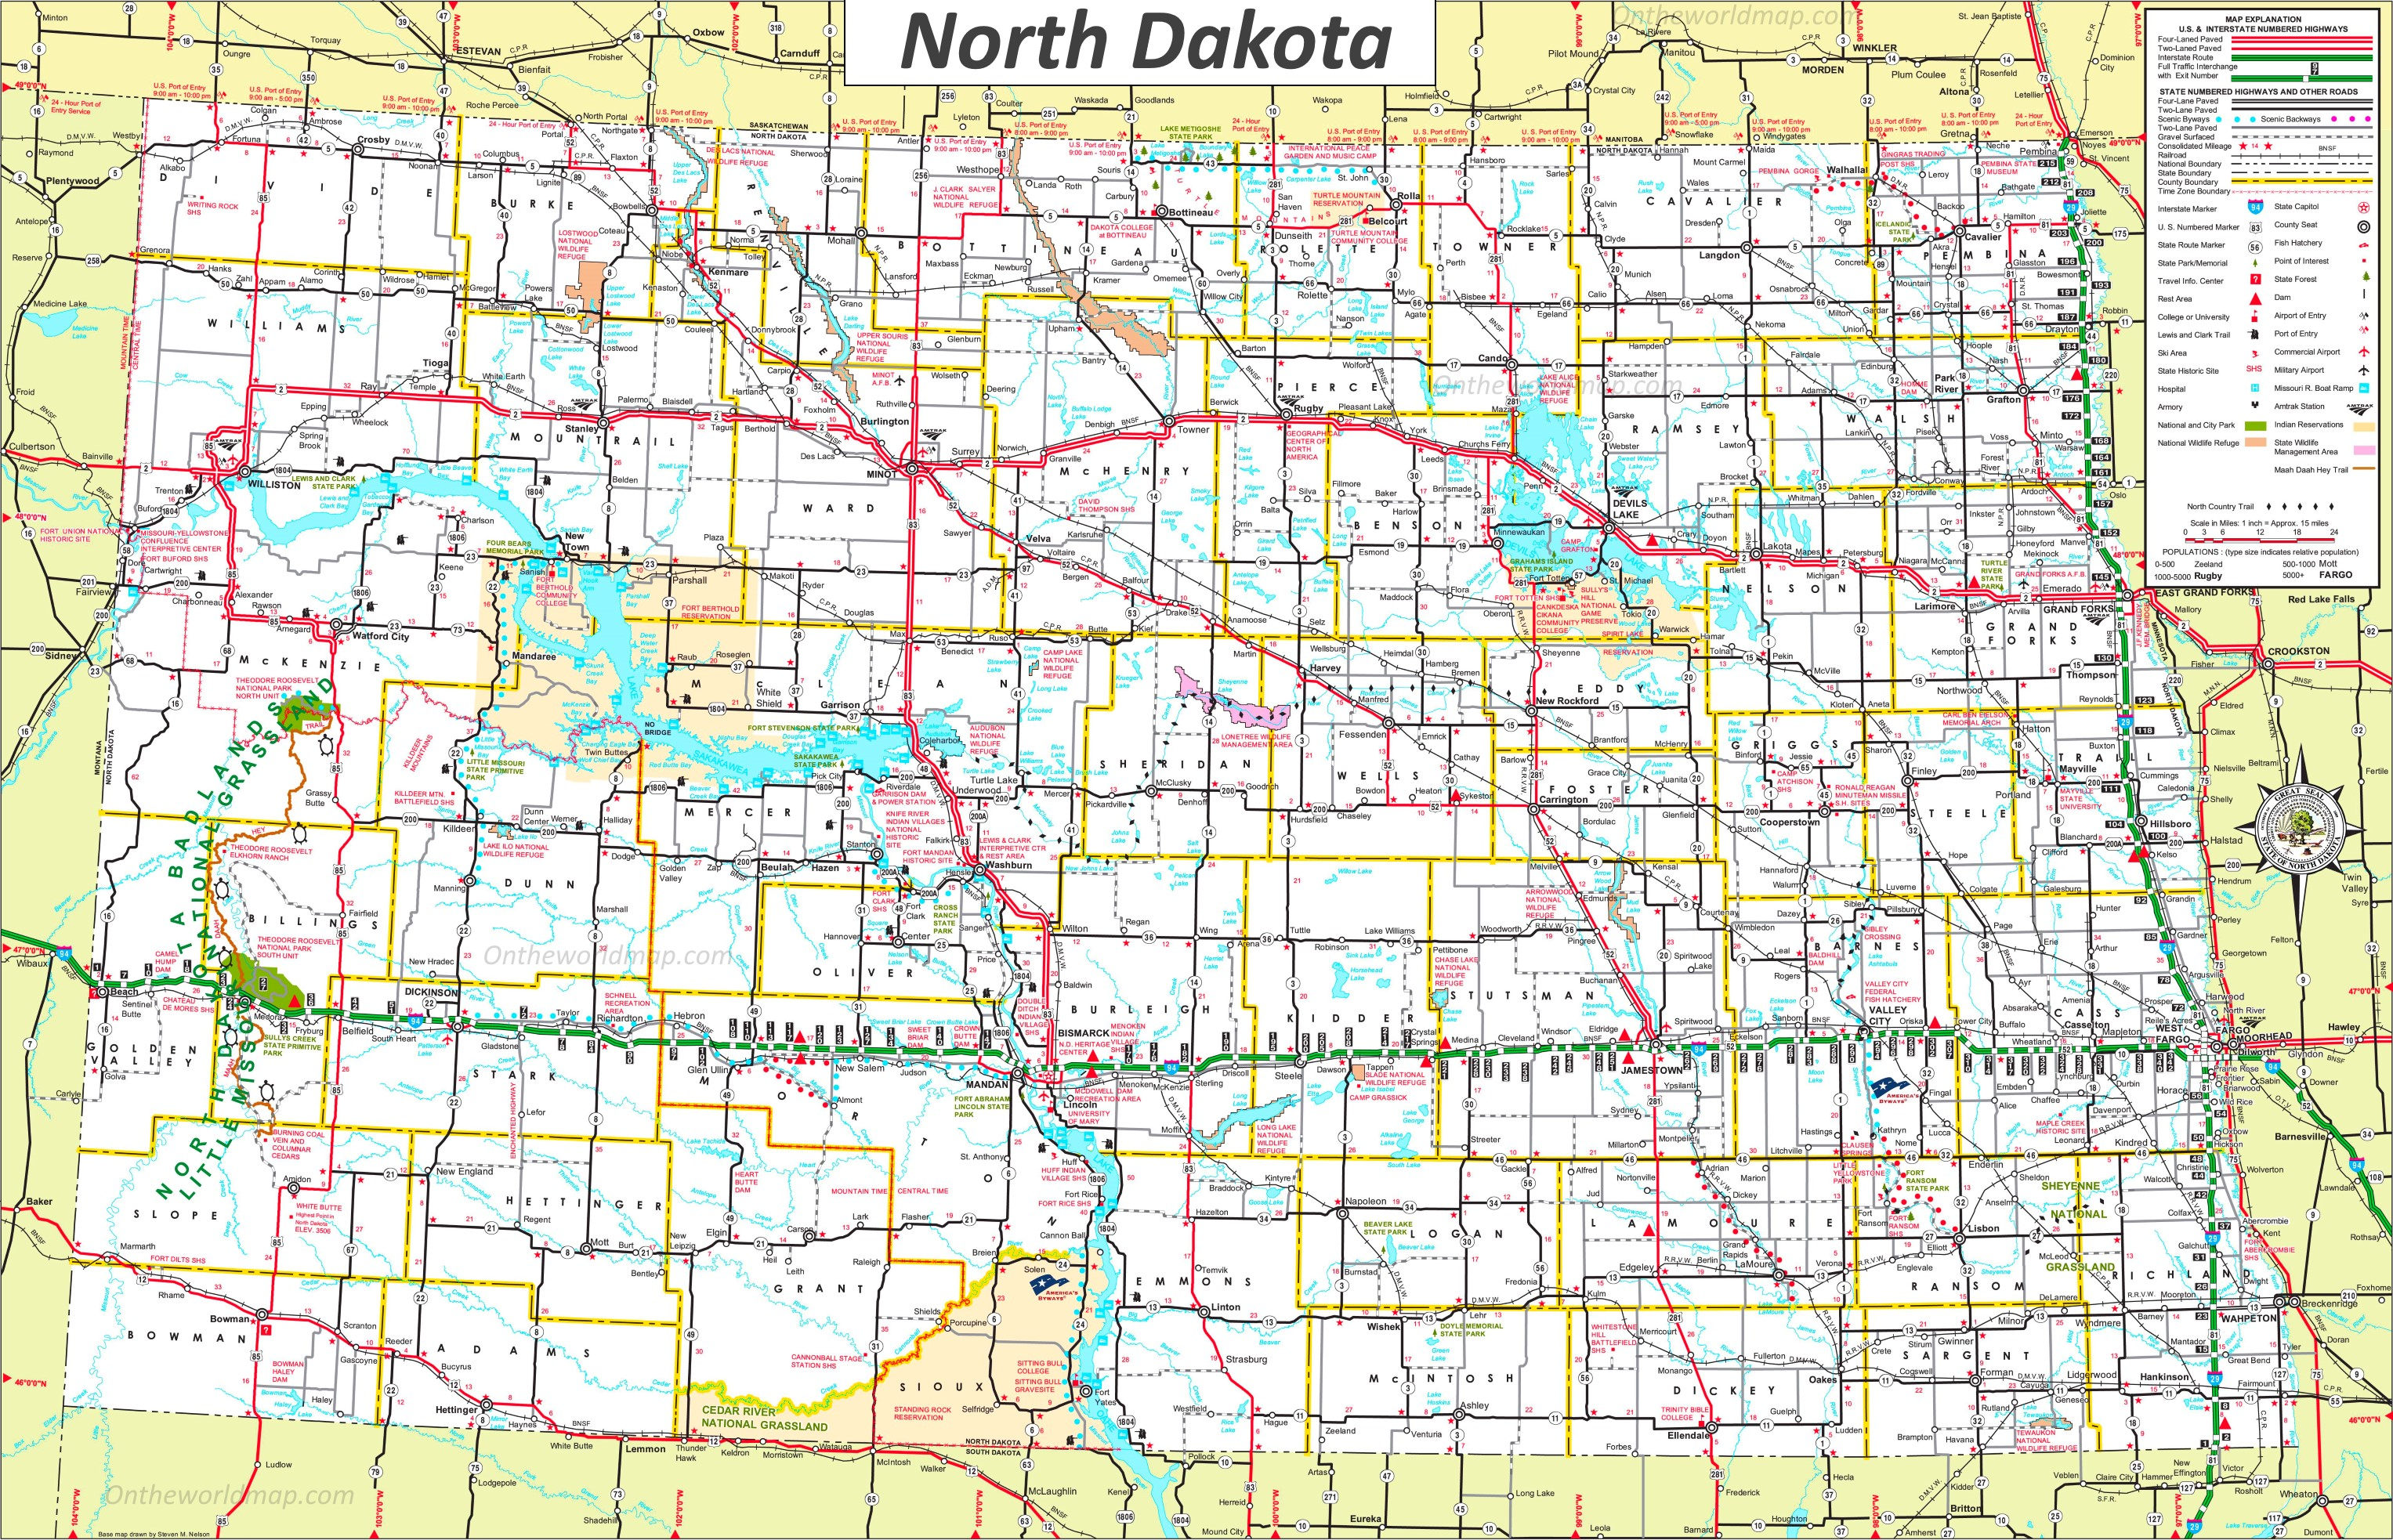 North Dakota Map With Cities Large detailed tourist map of North Dakota with cities and towns